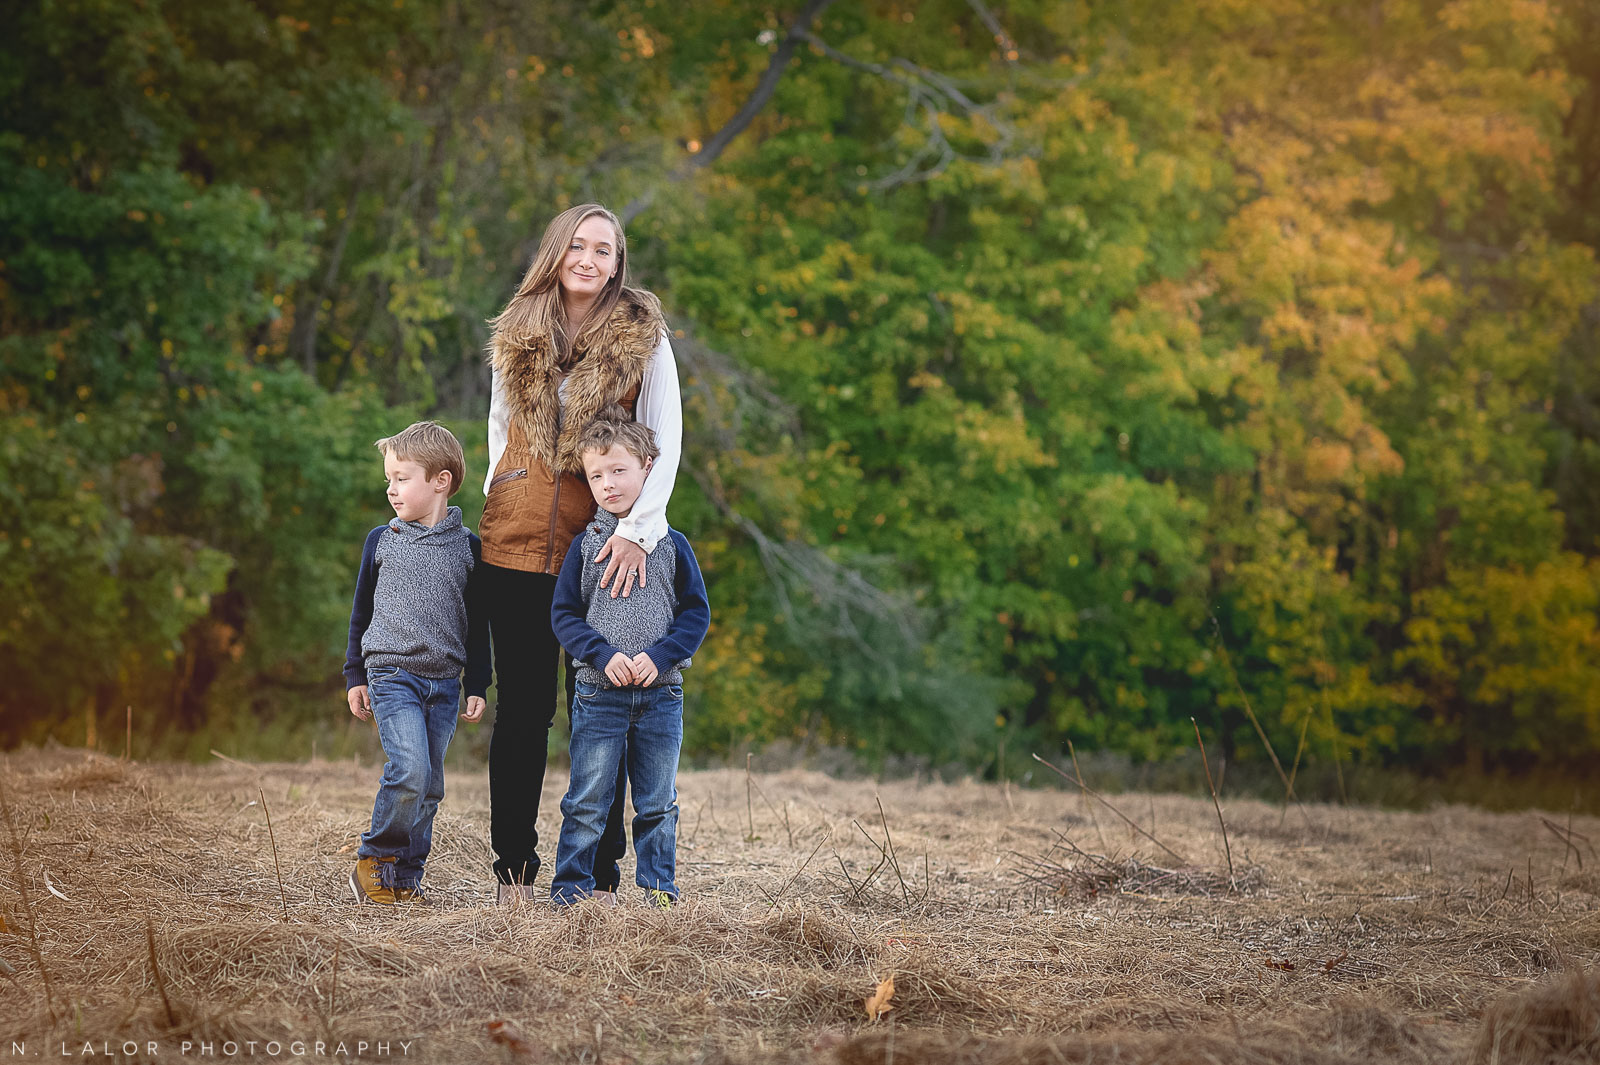 nlalor-photography-2014-styled-family-life-new-canaan-nature-center-fall-13.jpg